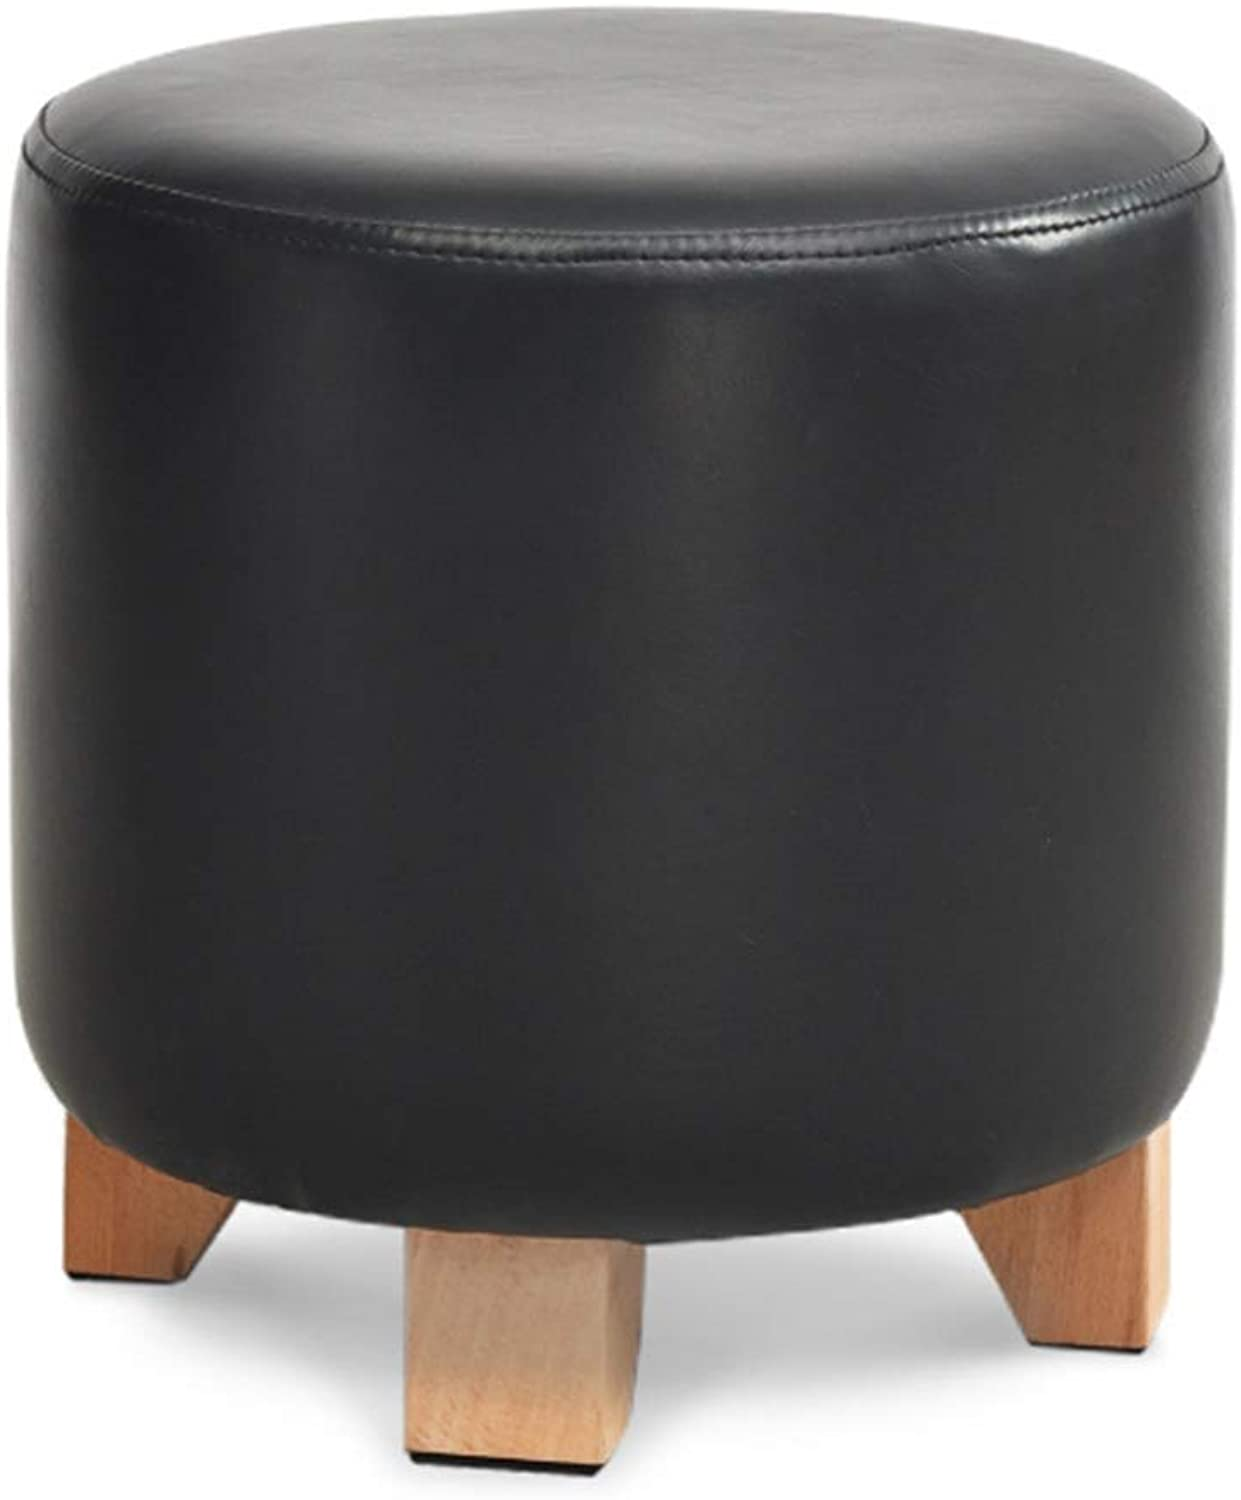 RMJAI Household Pouffes and Footstools Cylindrical Structure 3-Leg Support Stable PU Exterior Foot Stool Foot Rest Living Room Decoration shoes Bench(11.4x11.4x11.4 Inches) (color   Black)